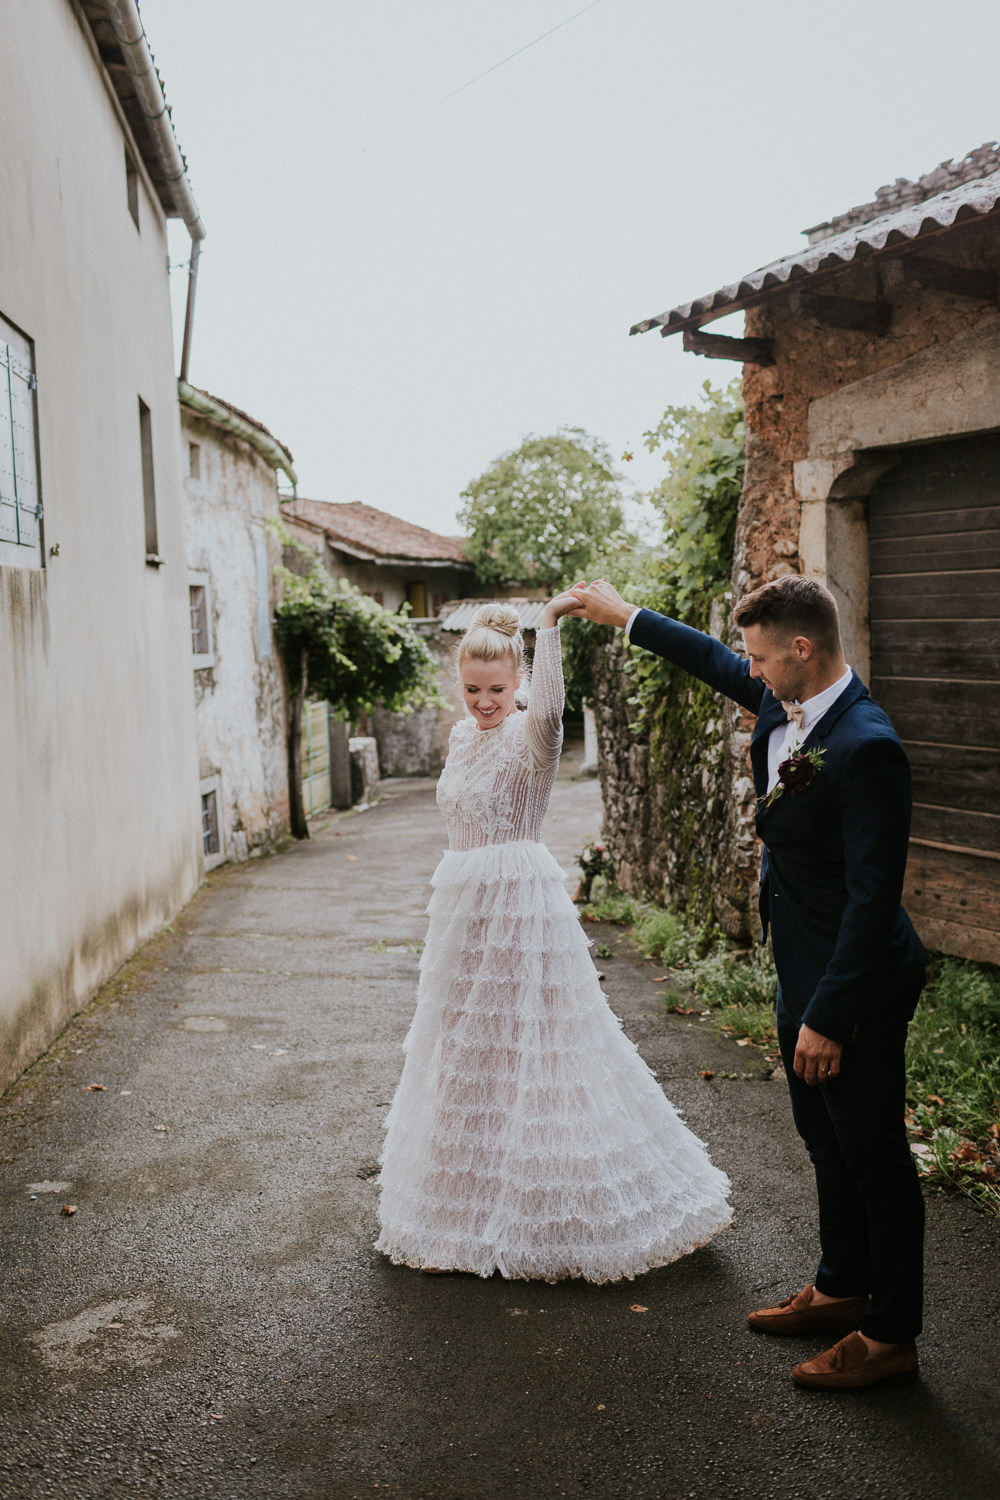 Bride Bridal Dress Gown Sleeves Ruffle Skirt Slovenia Wedding Bohemian Maja Tsolo Photography